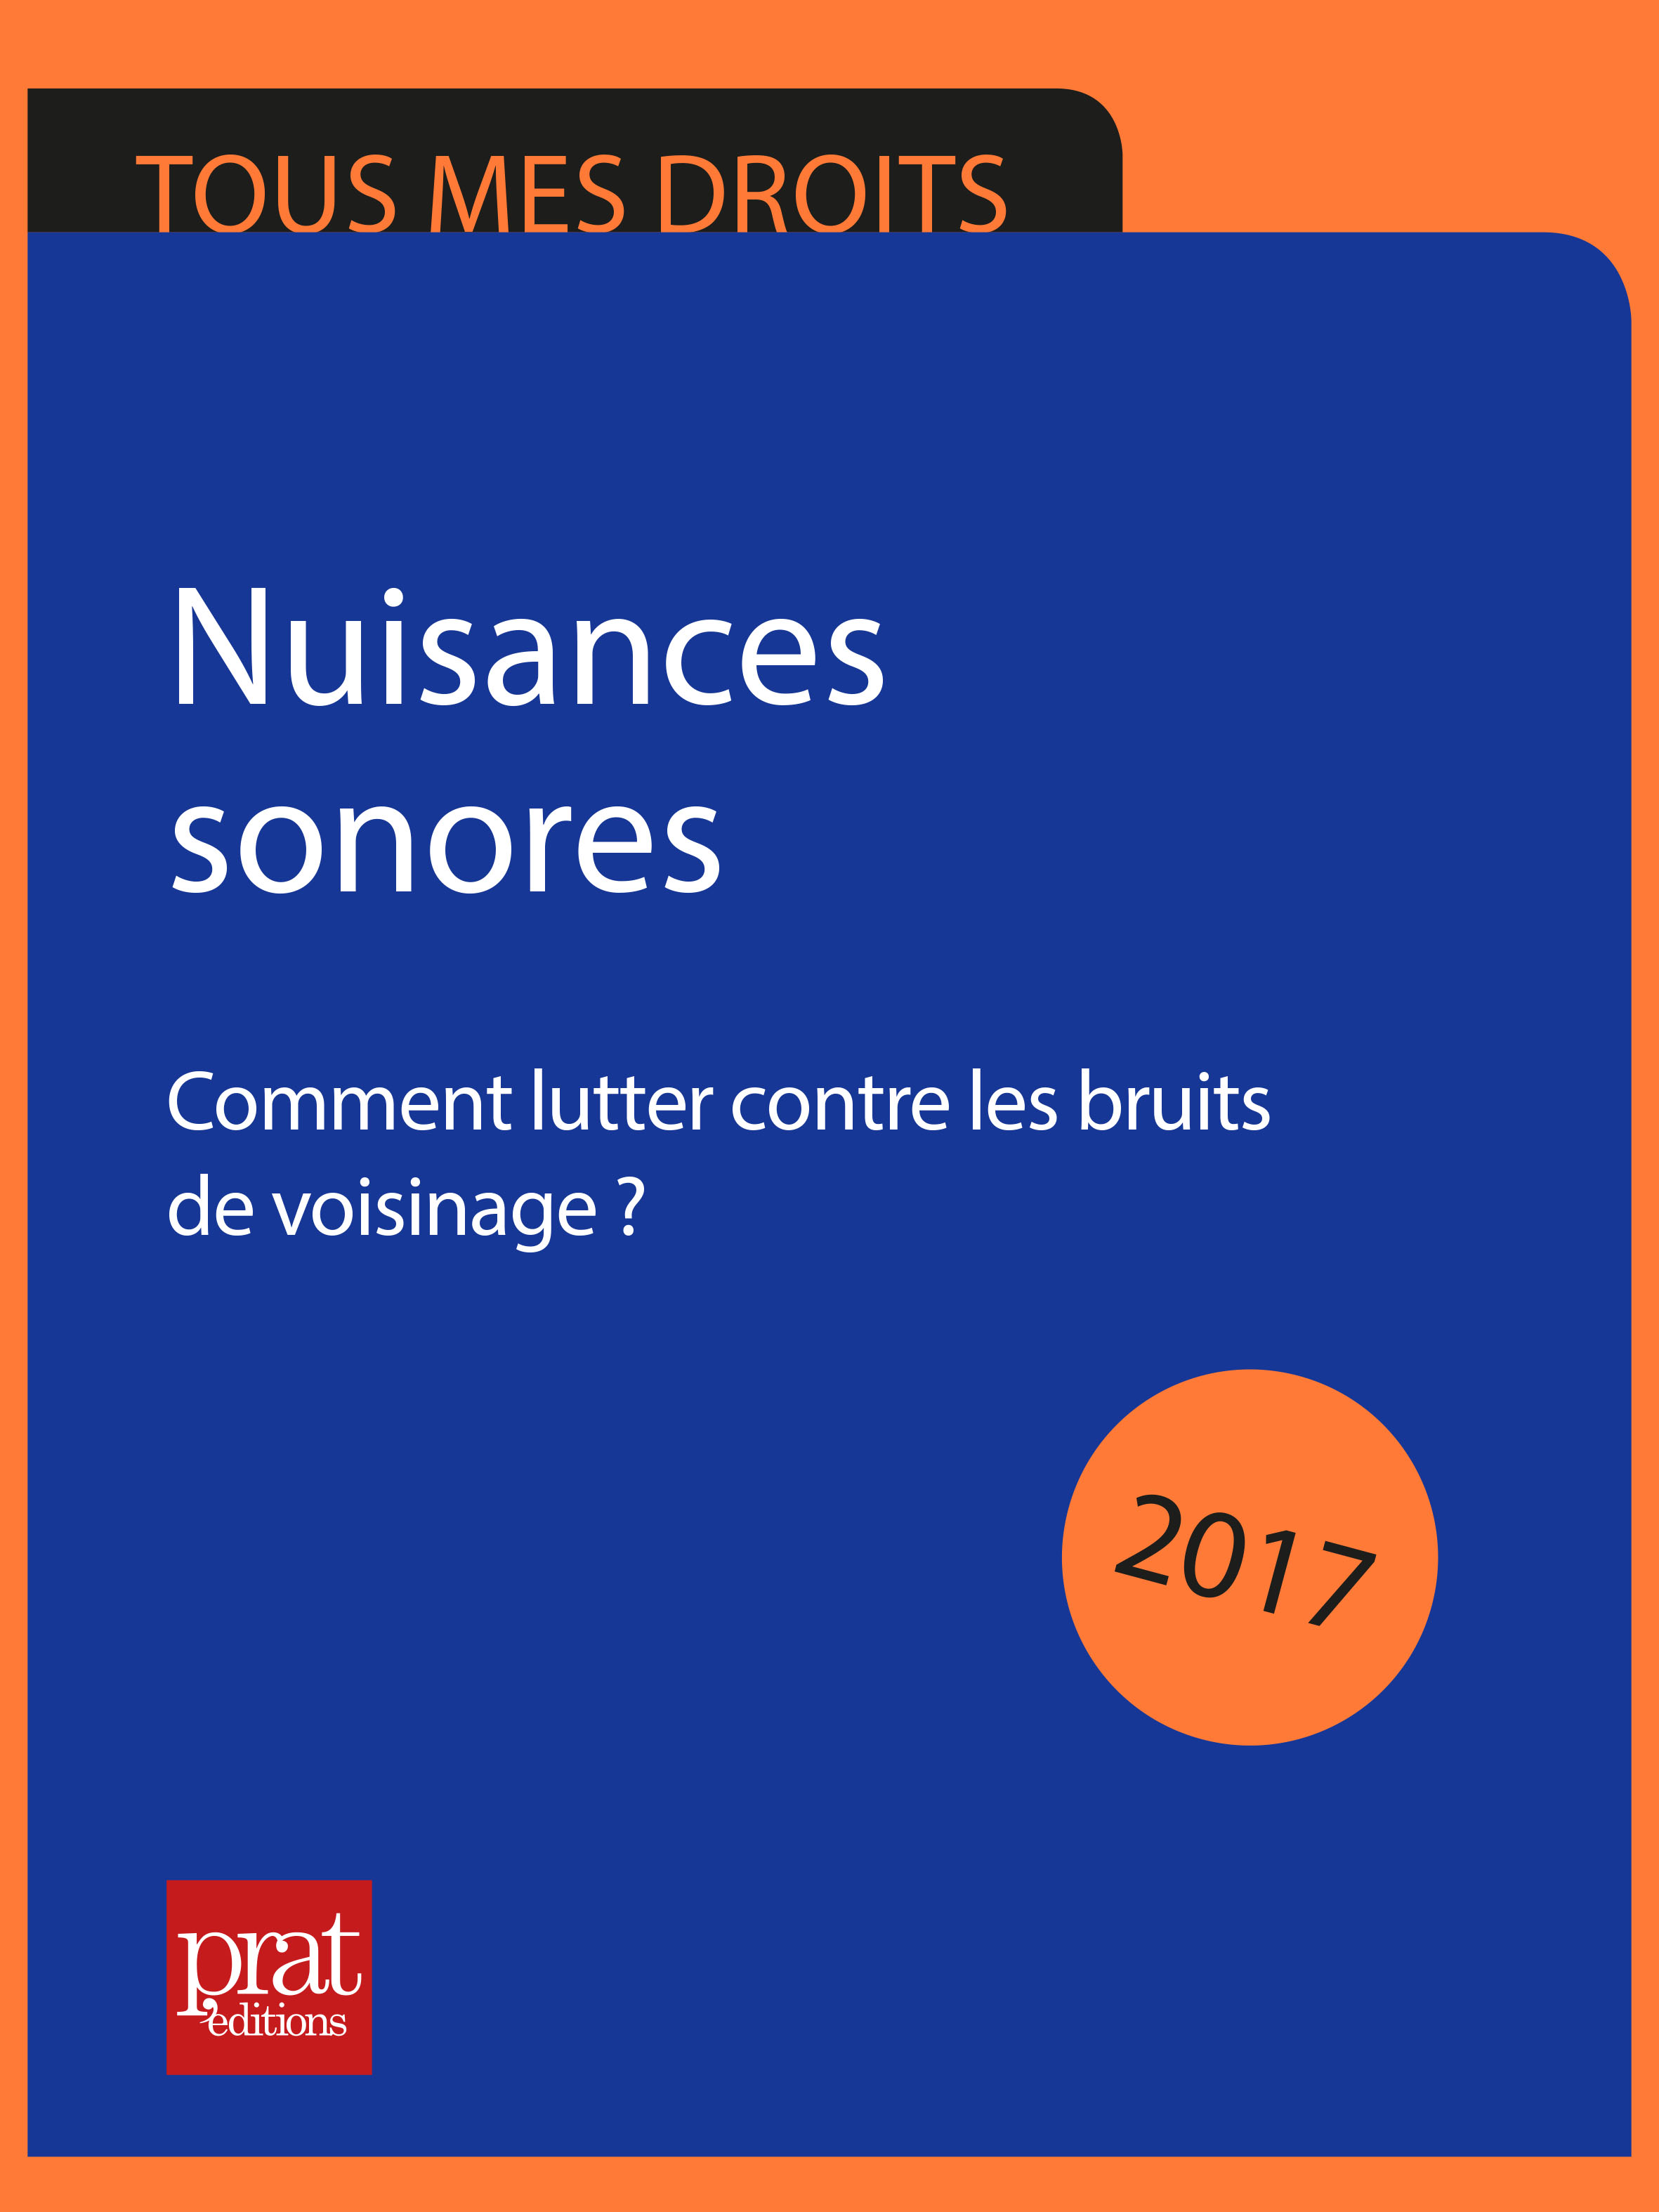 Nuisances sonores